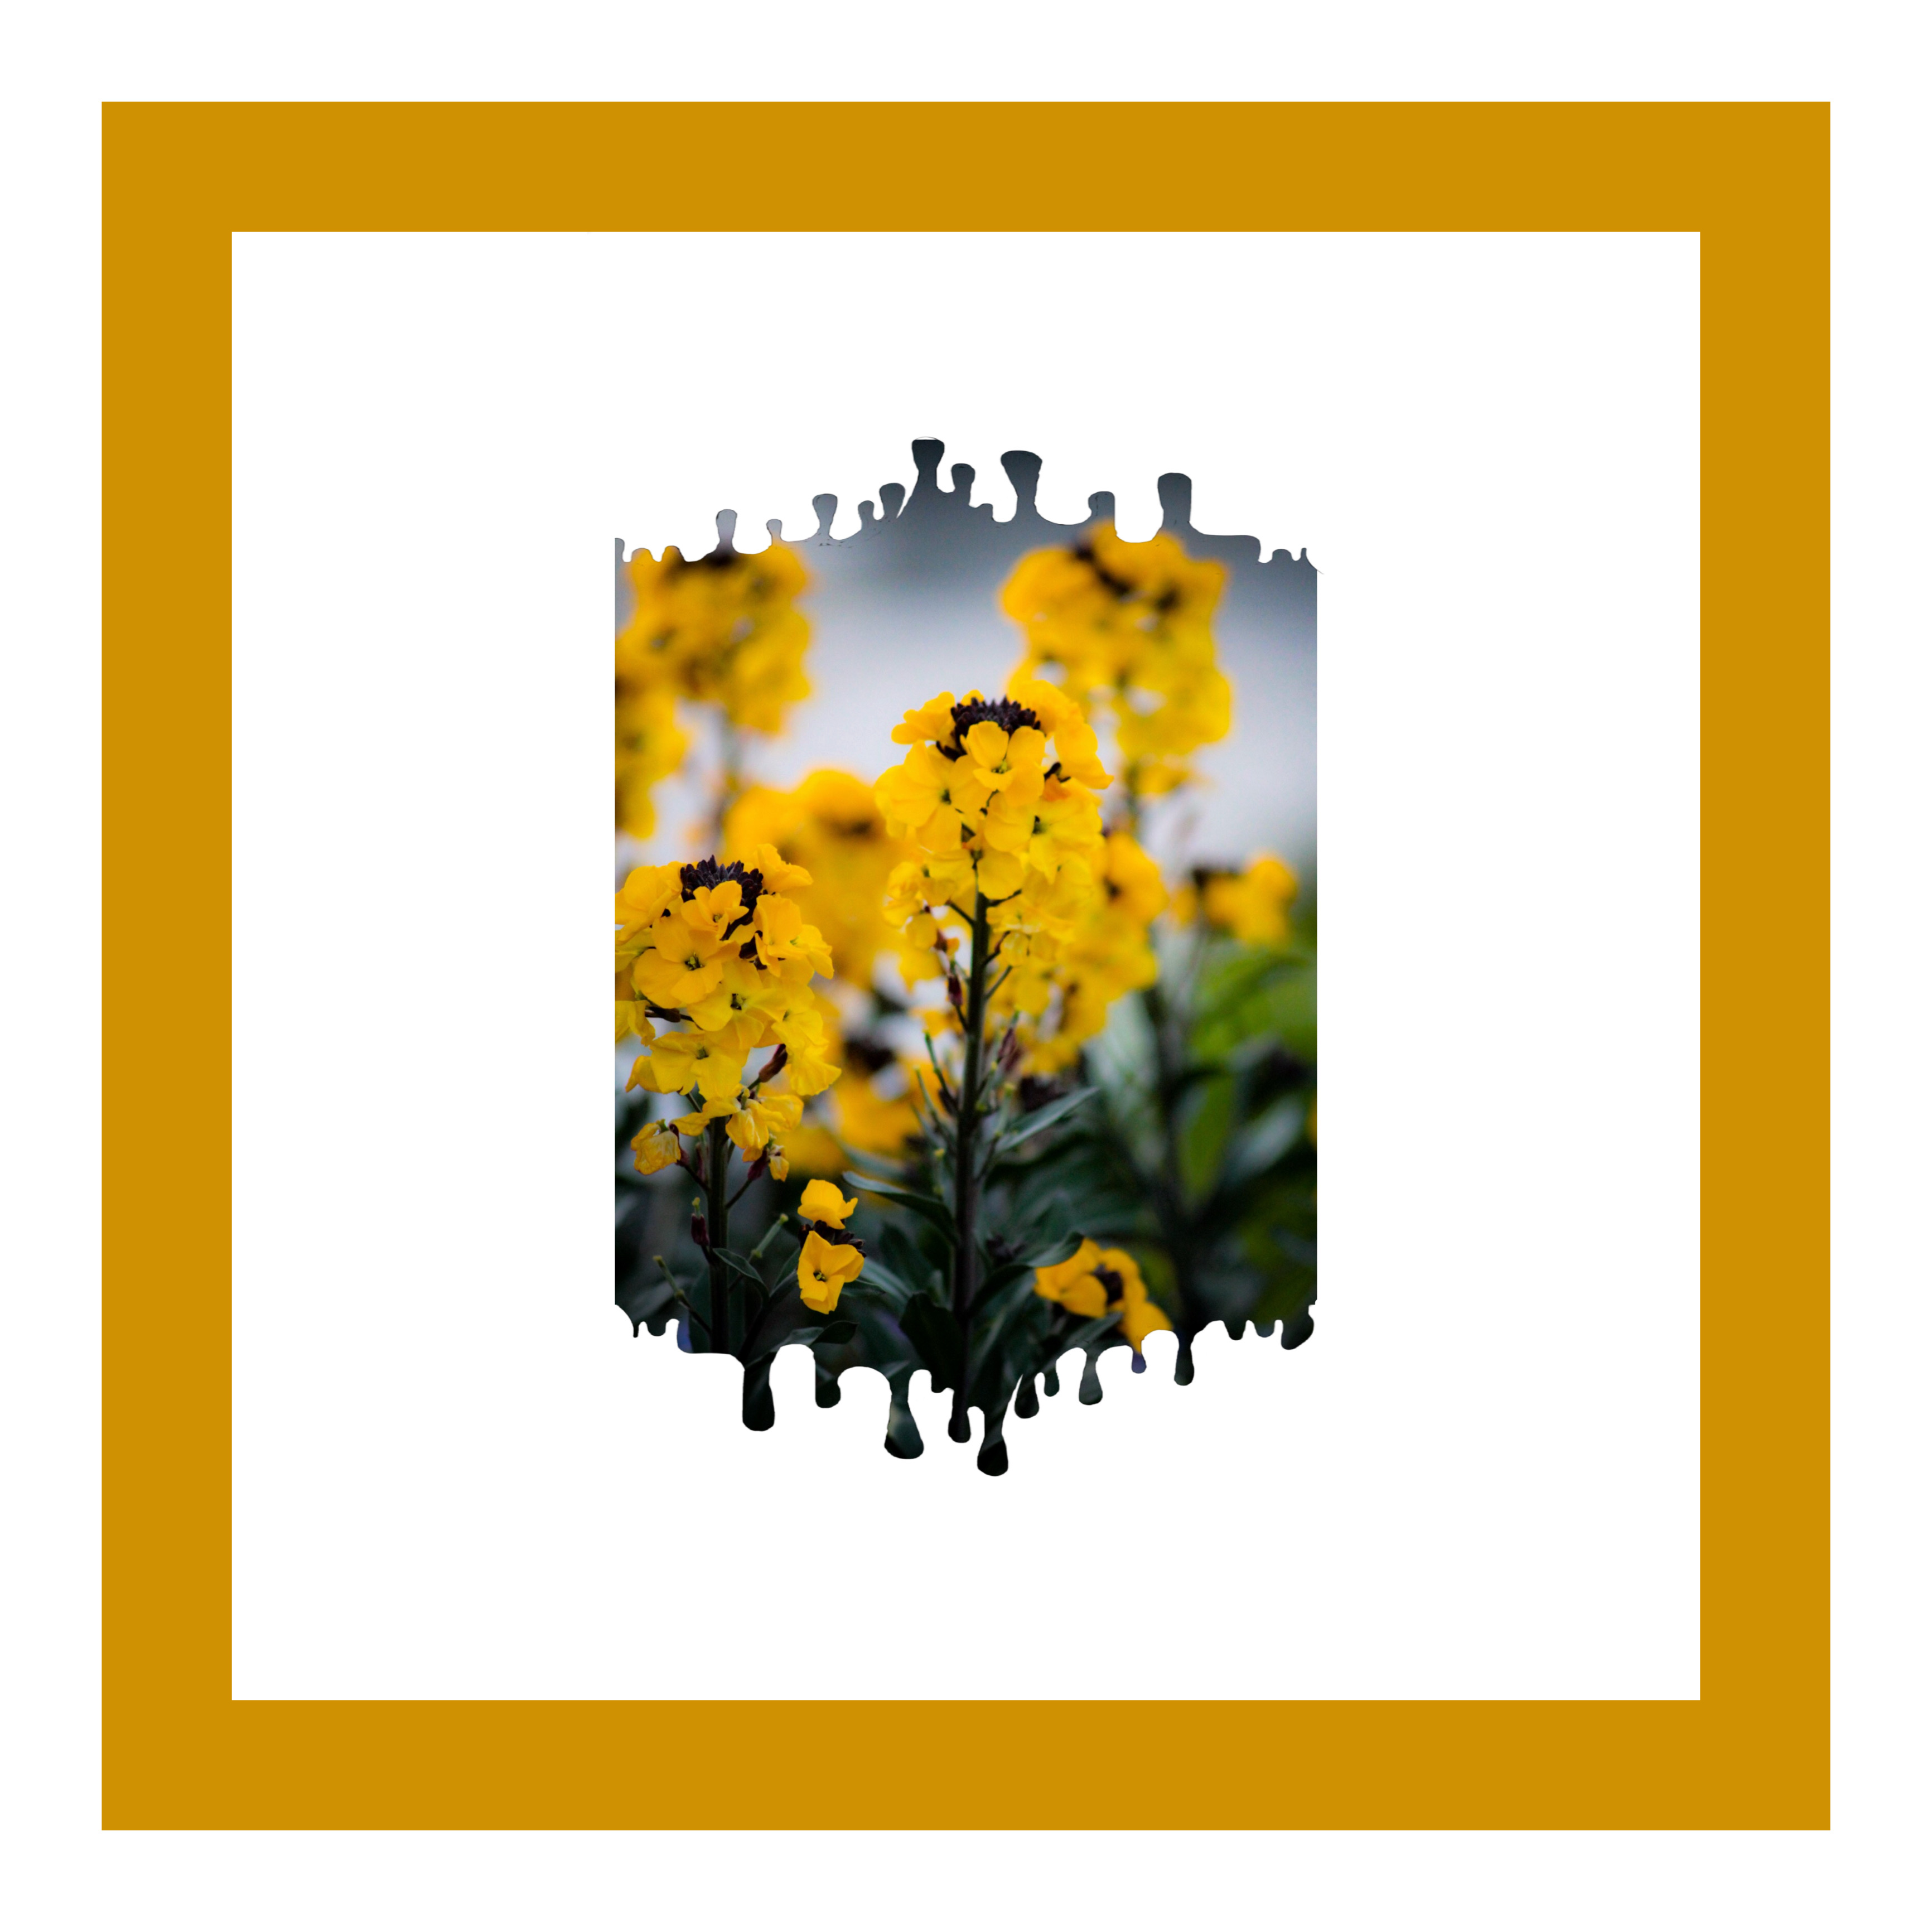 #freetoedit #goldenrod #yellow #love